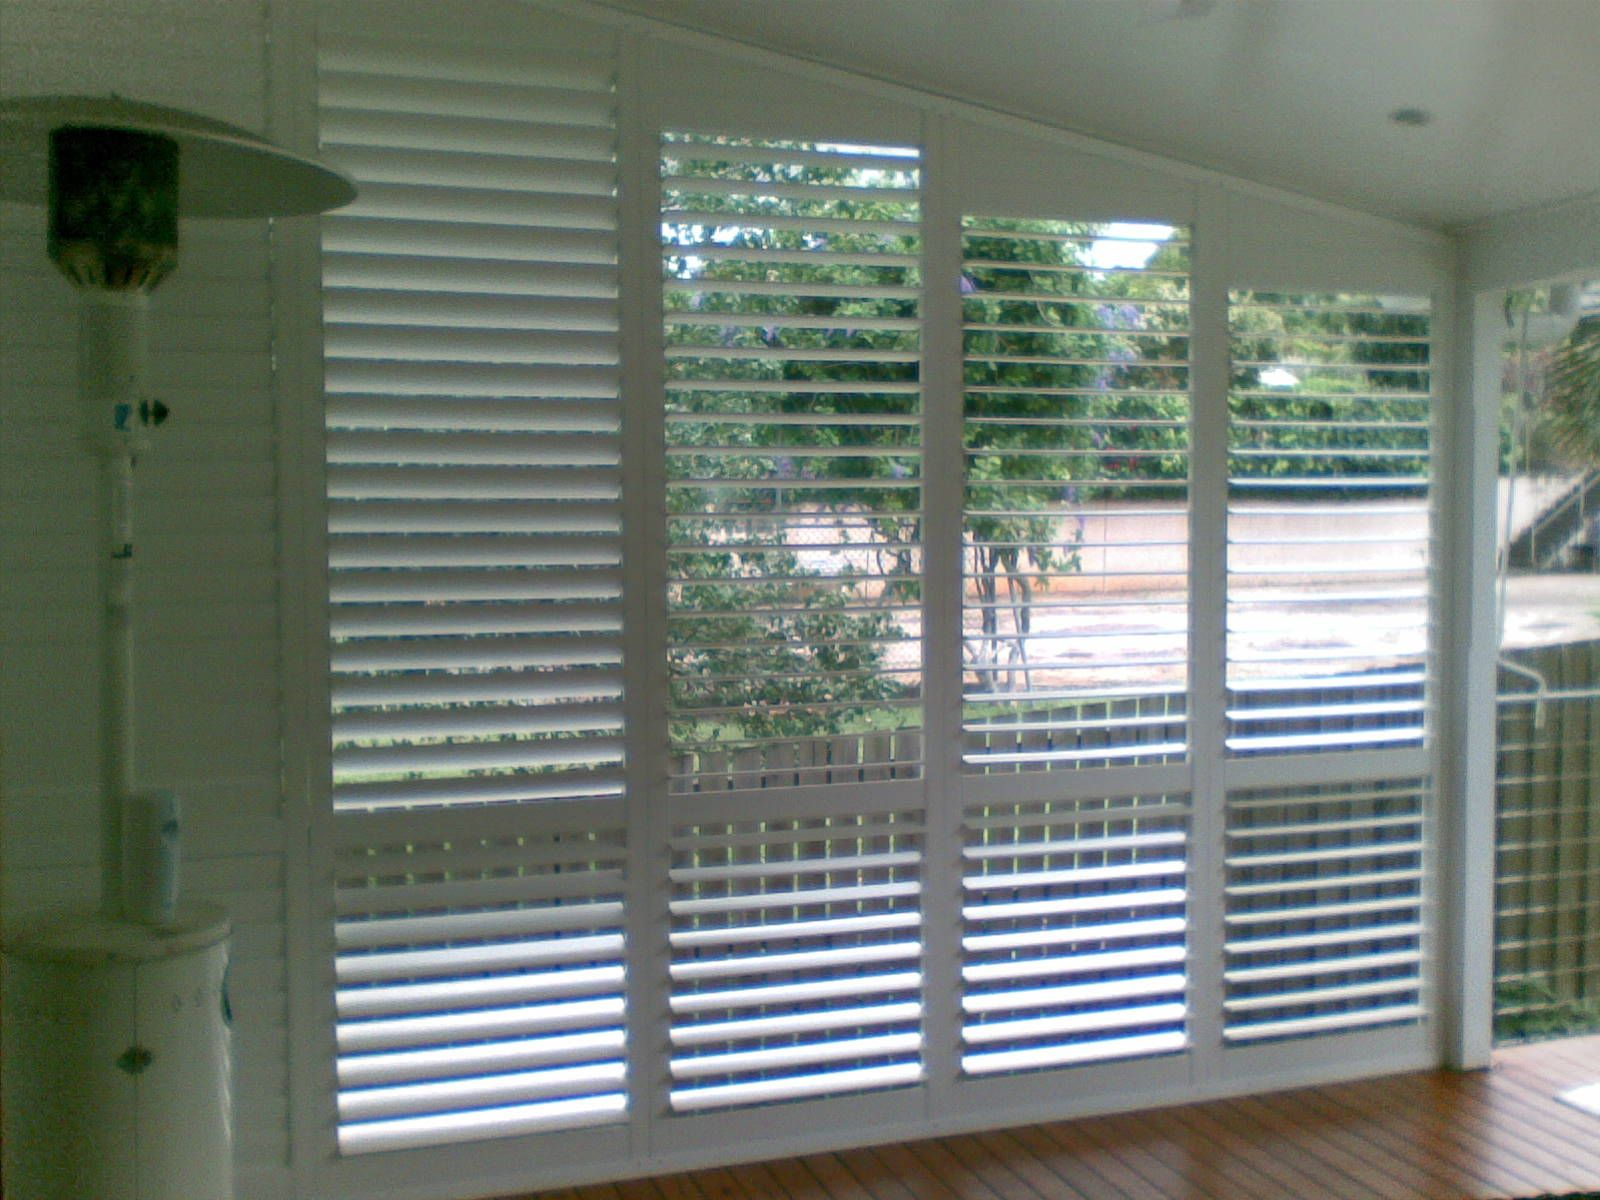 Outdoor White Plantation Shutters For Privacy Via Http://dymonblinds.com.au